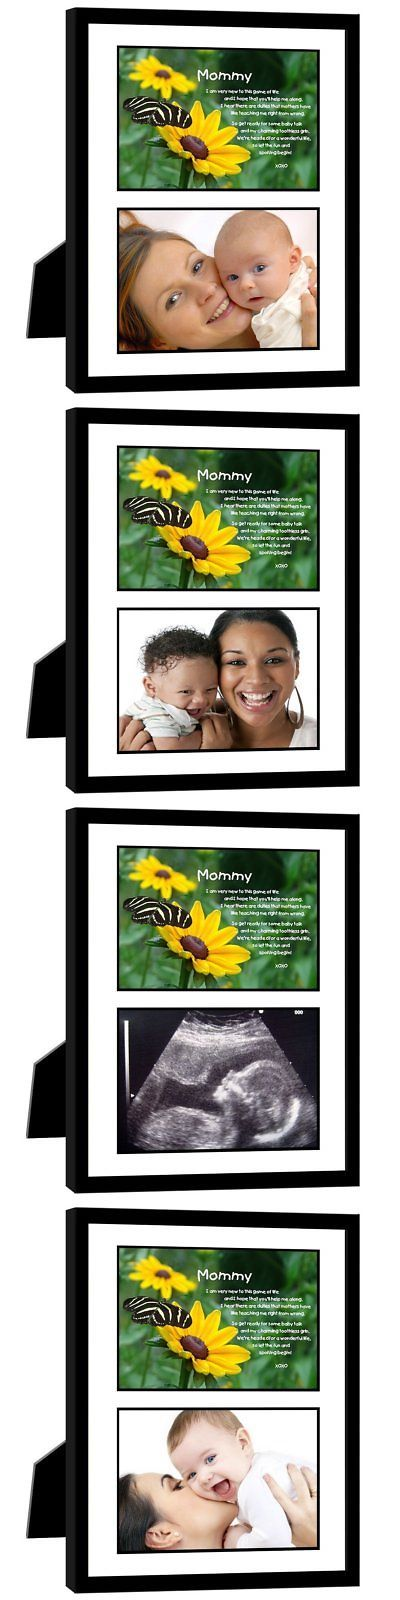 Baby Picture Frames 117392: Birthday Or Christmas Gift For New Mom From Baby Daughter Or Son, Sweet Poem In -> BUY IT NOW ONLY: $56.64 on eBay!